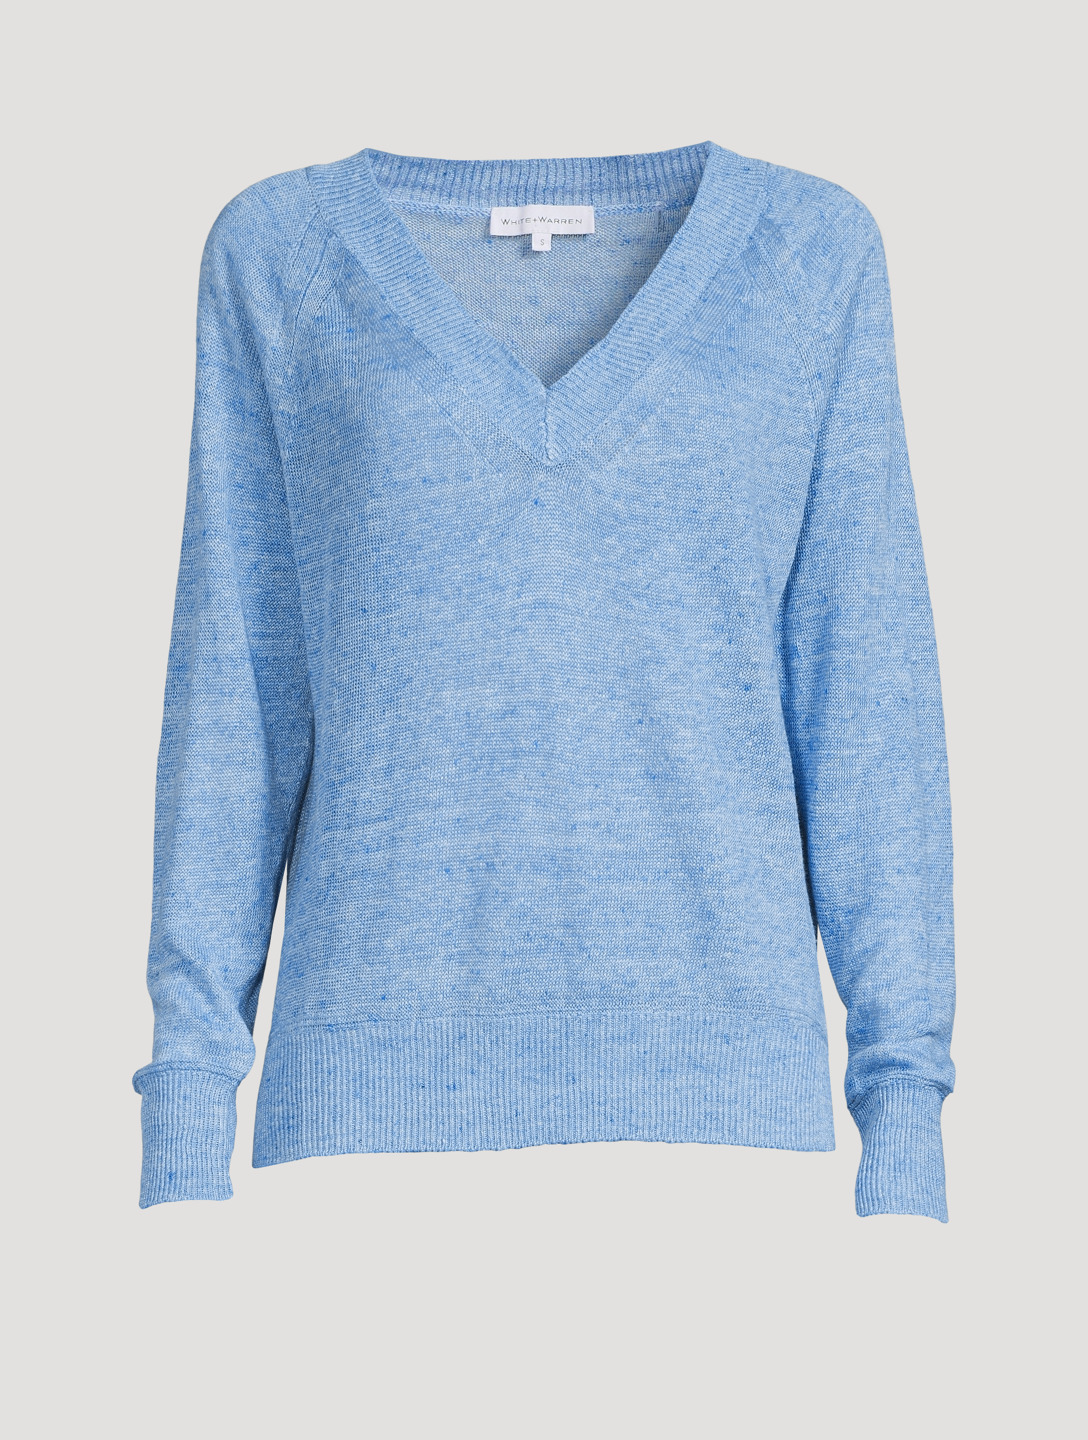 WHITE + WARREN Linen V-Neck Sweater Women's Blue